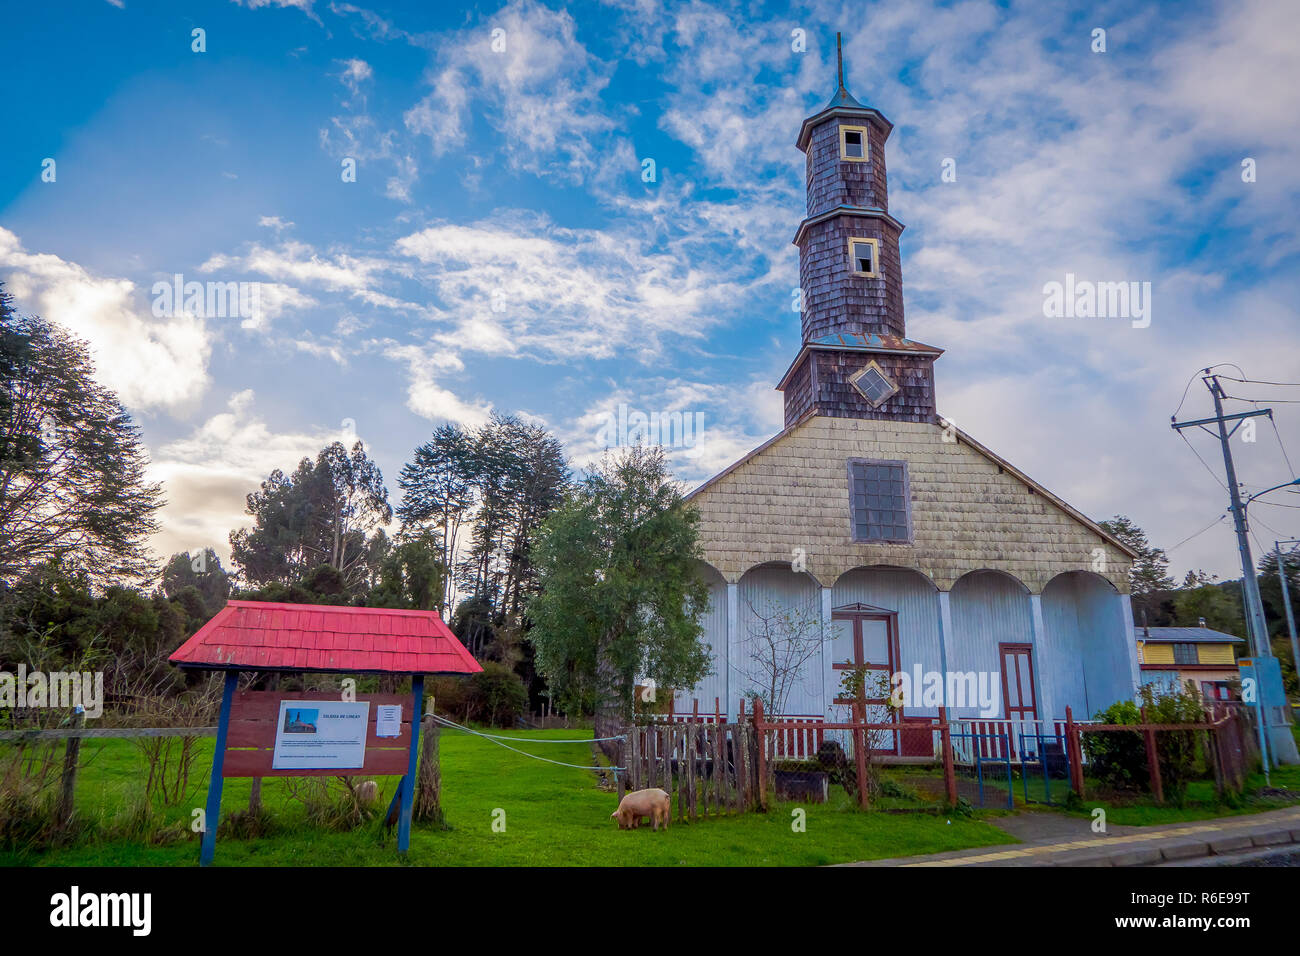 CHILOE, CHILE - SEPTEMBER, 27, 2018: Gorgeous view of Sunlit wooden Church of our Lady of Patrocinio on Chiloe Island - Stock Image